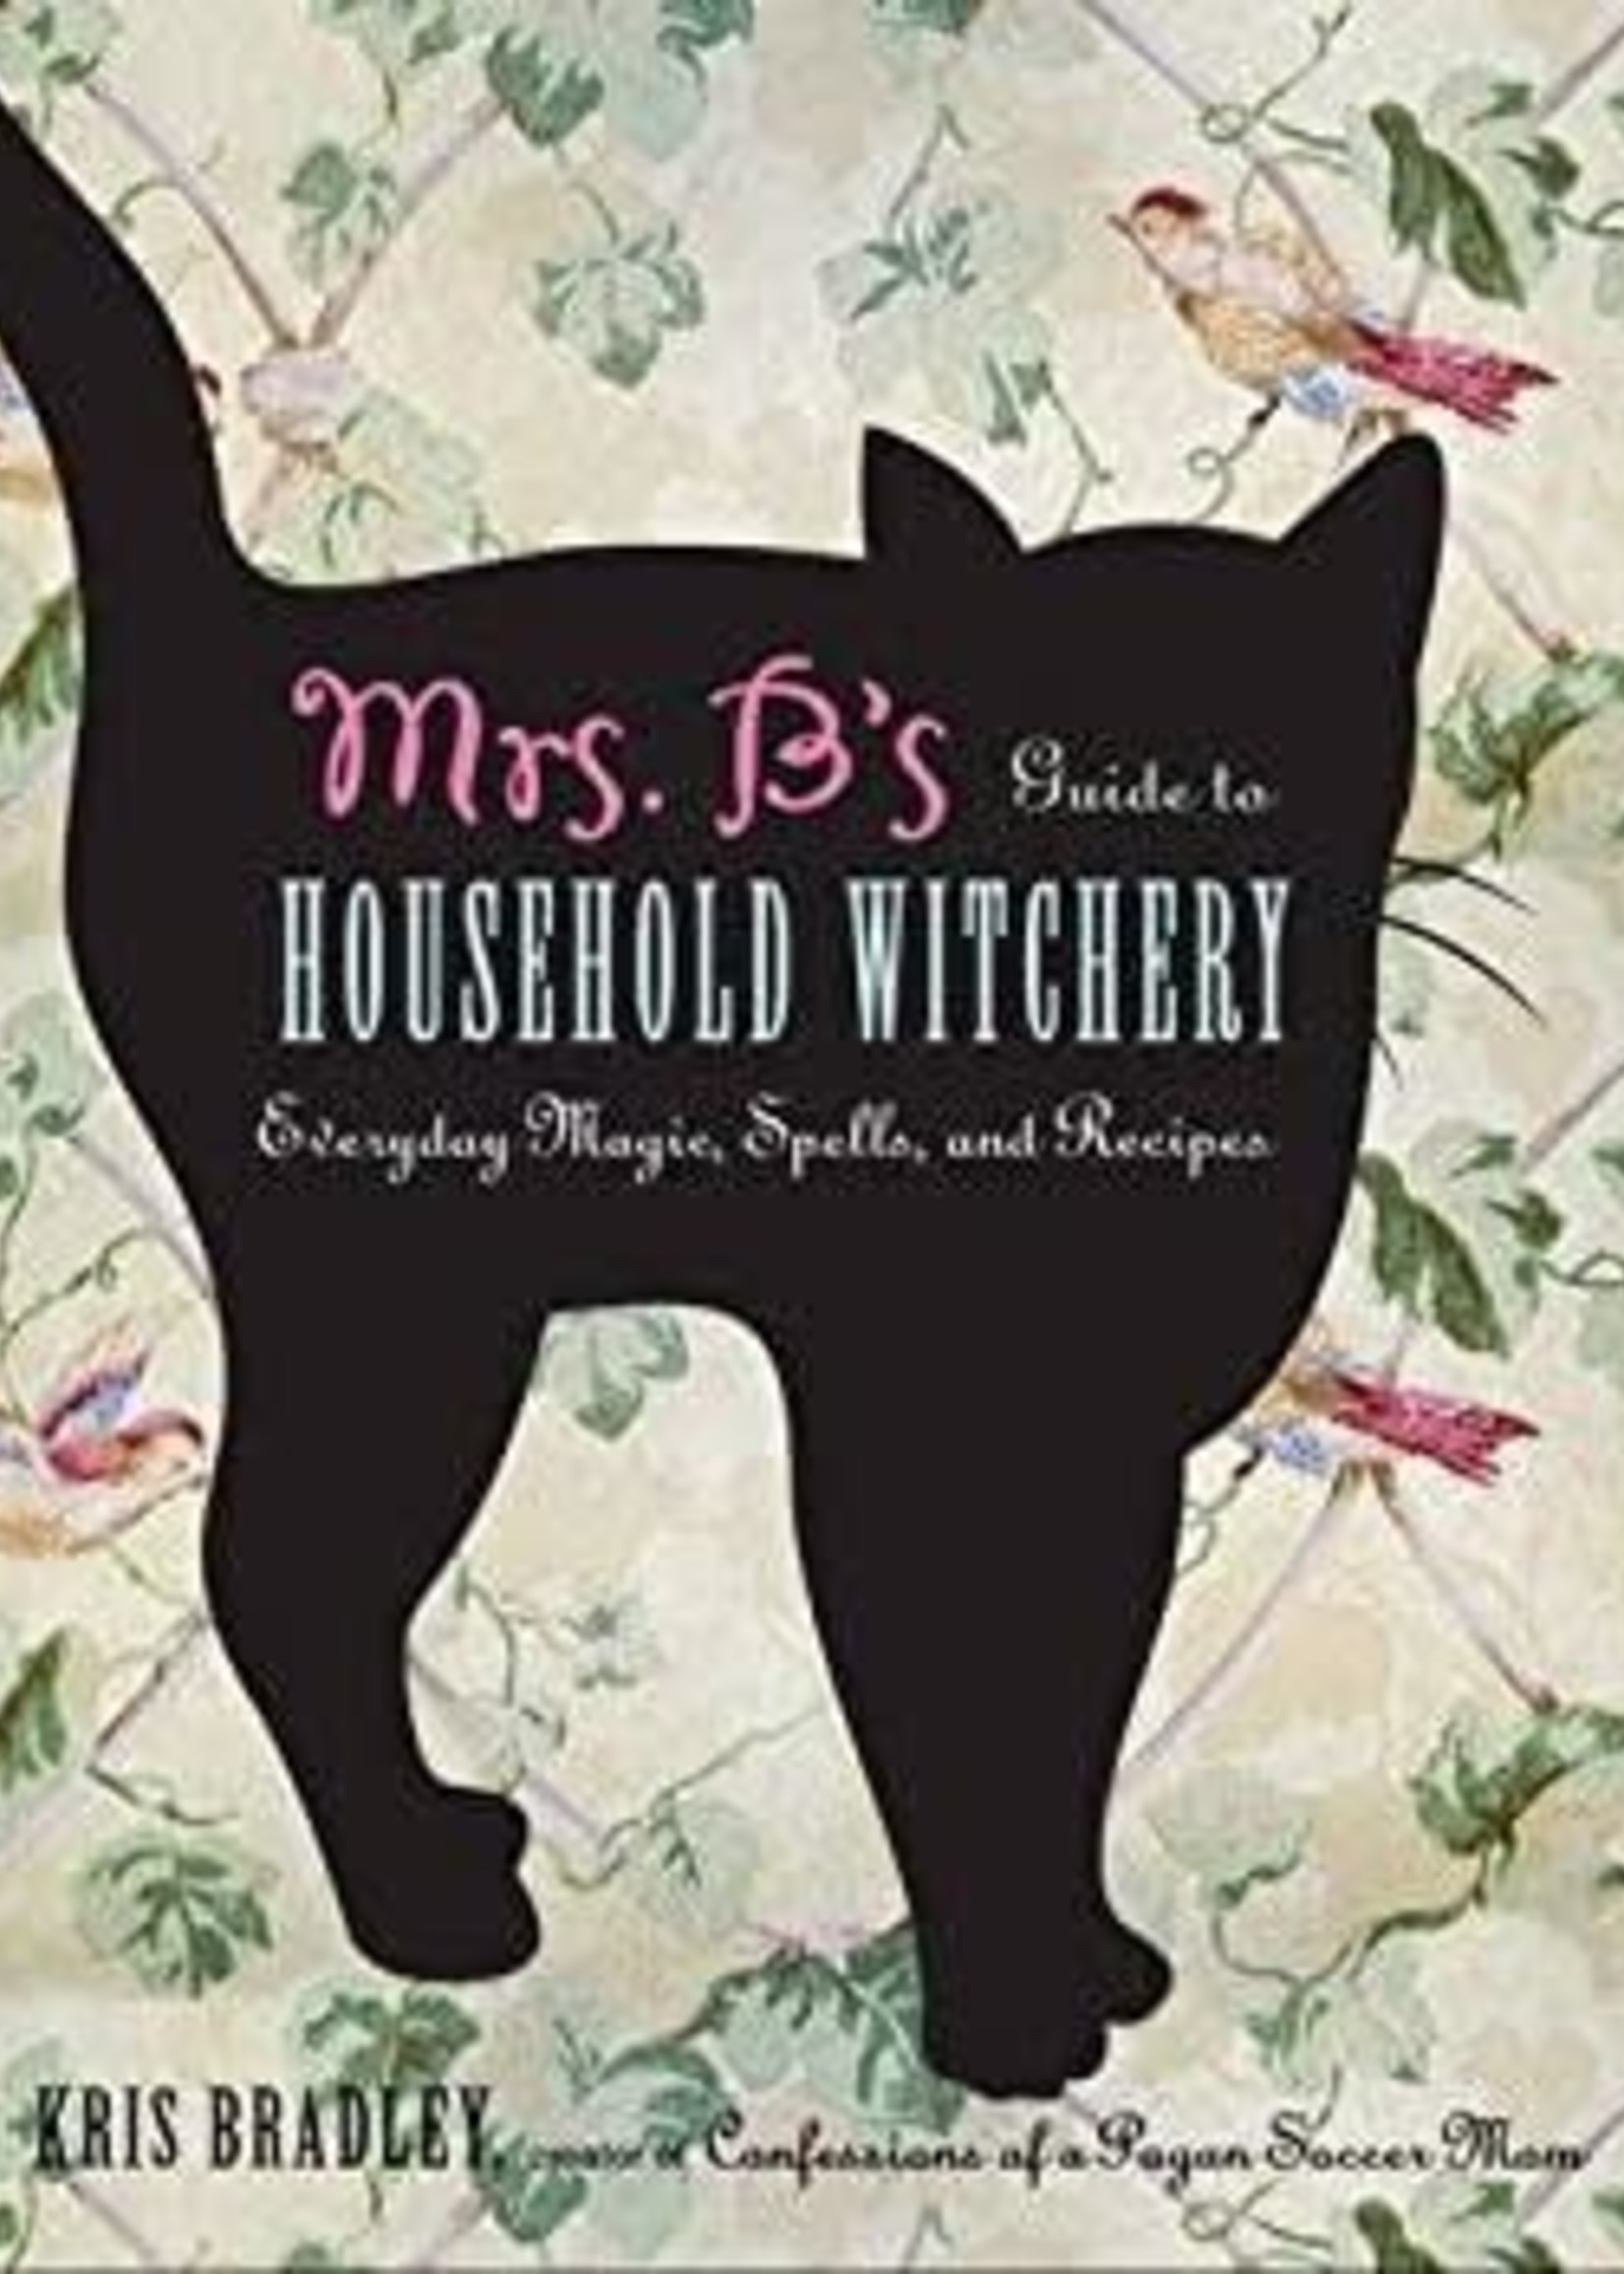 Mrs. B's Guide to Household Witchery : Everyday Magic, Spells, and Recipes-Kris Bradley